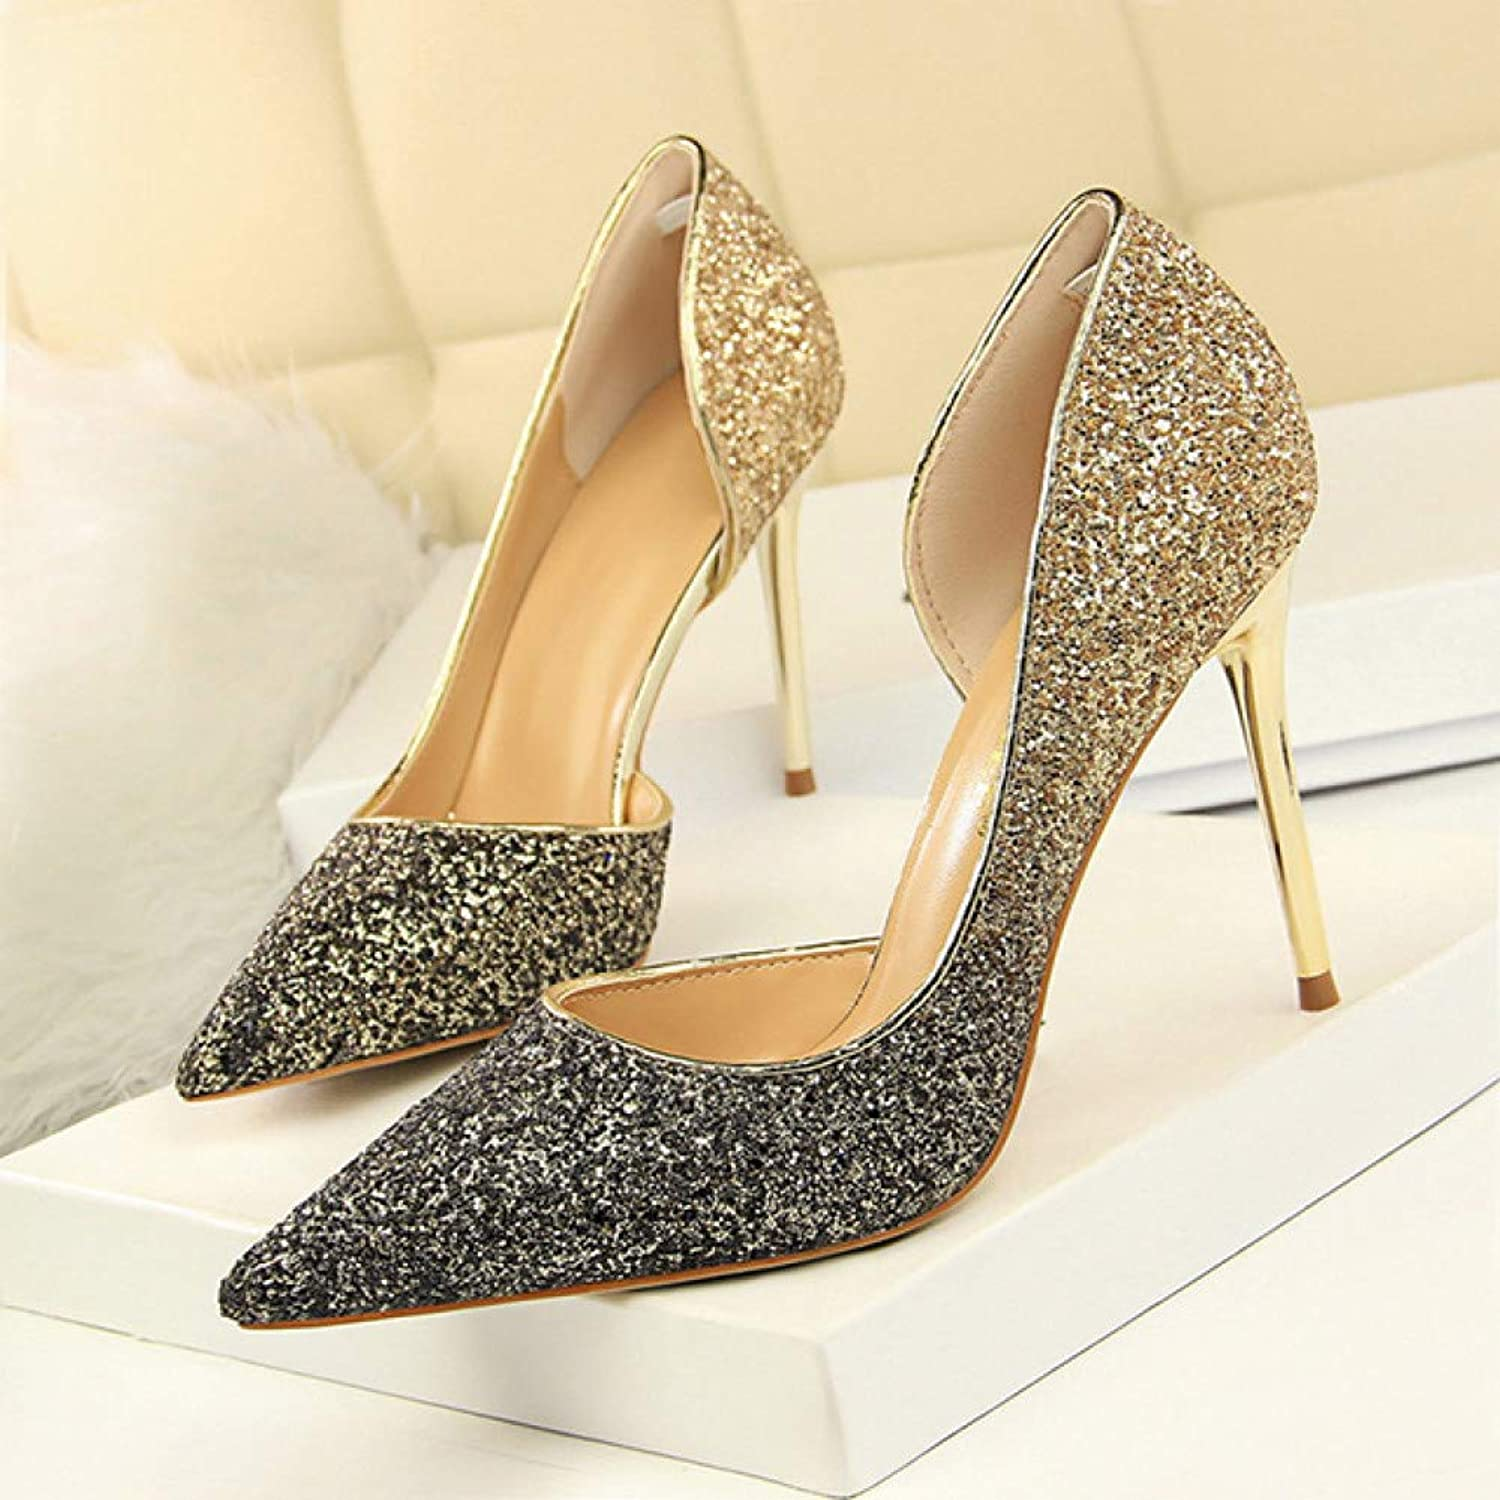 FASZQ Women Pumps Extrem High Heels Women shoes Thin Heels Female shoes Wedding shoes gold Sliver White Ladies shoes